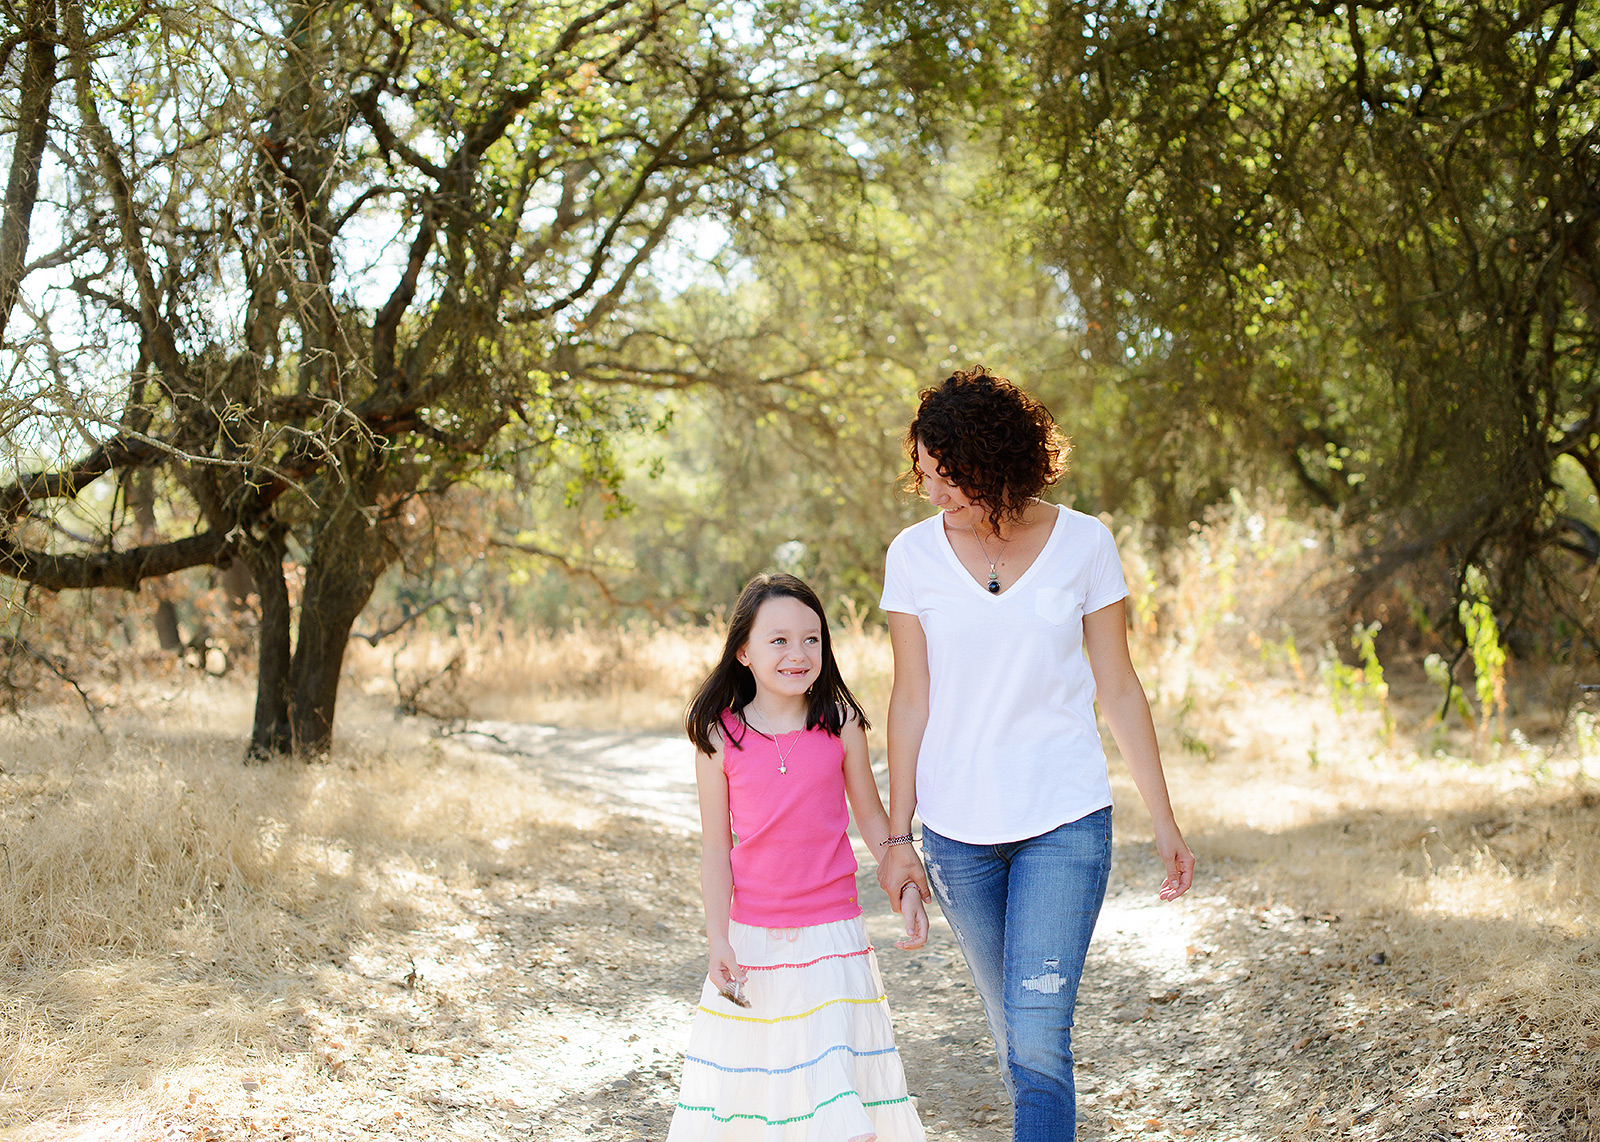 Mother and Daughter Walking in Nature Against Trees for family portraits at Effie Yeaw Nature Center